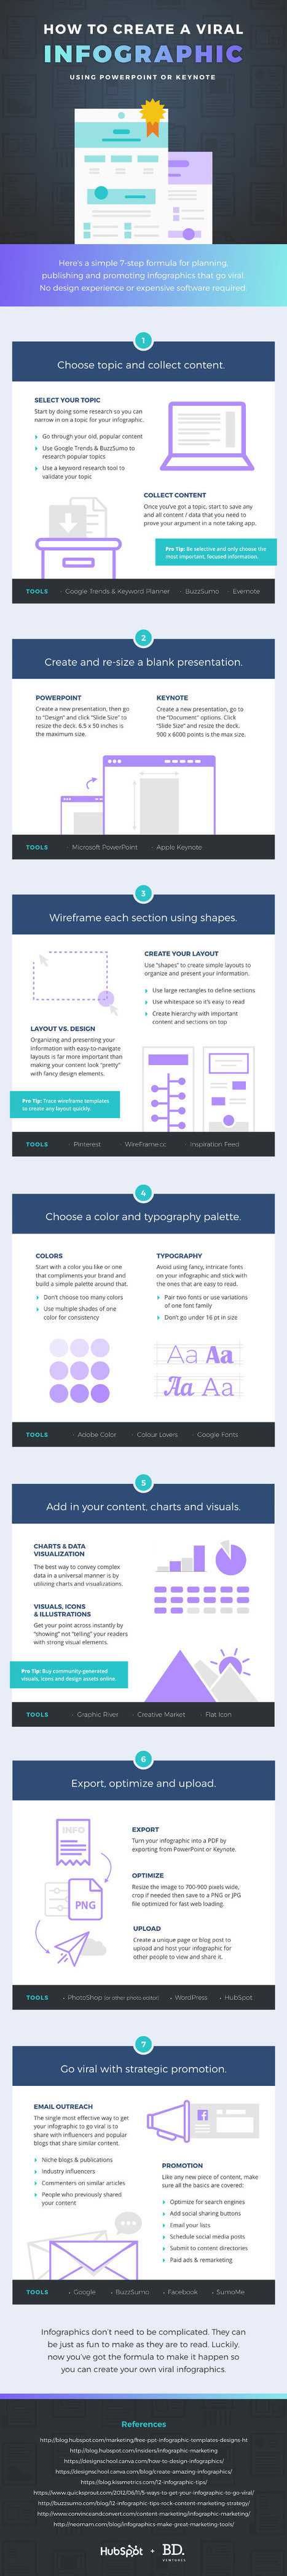 How to Create Infographics Using PowerPoint or Keynote [Infographic] | Web information Specialist | Scoop.it